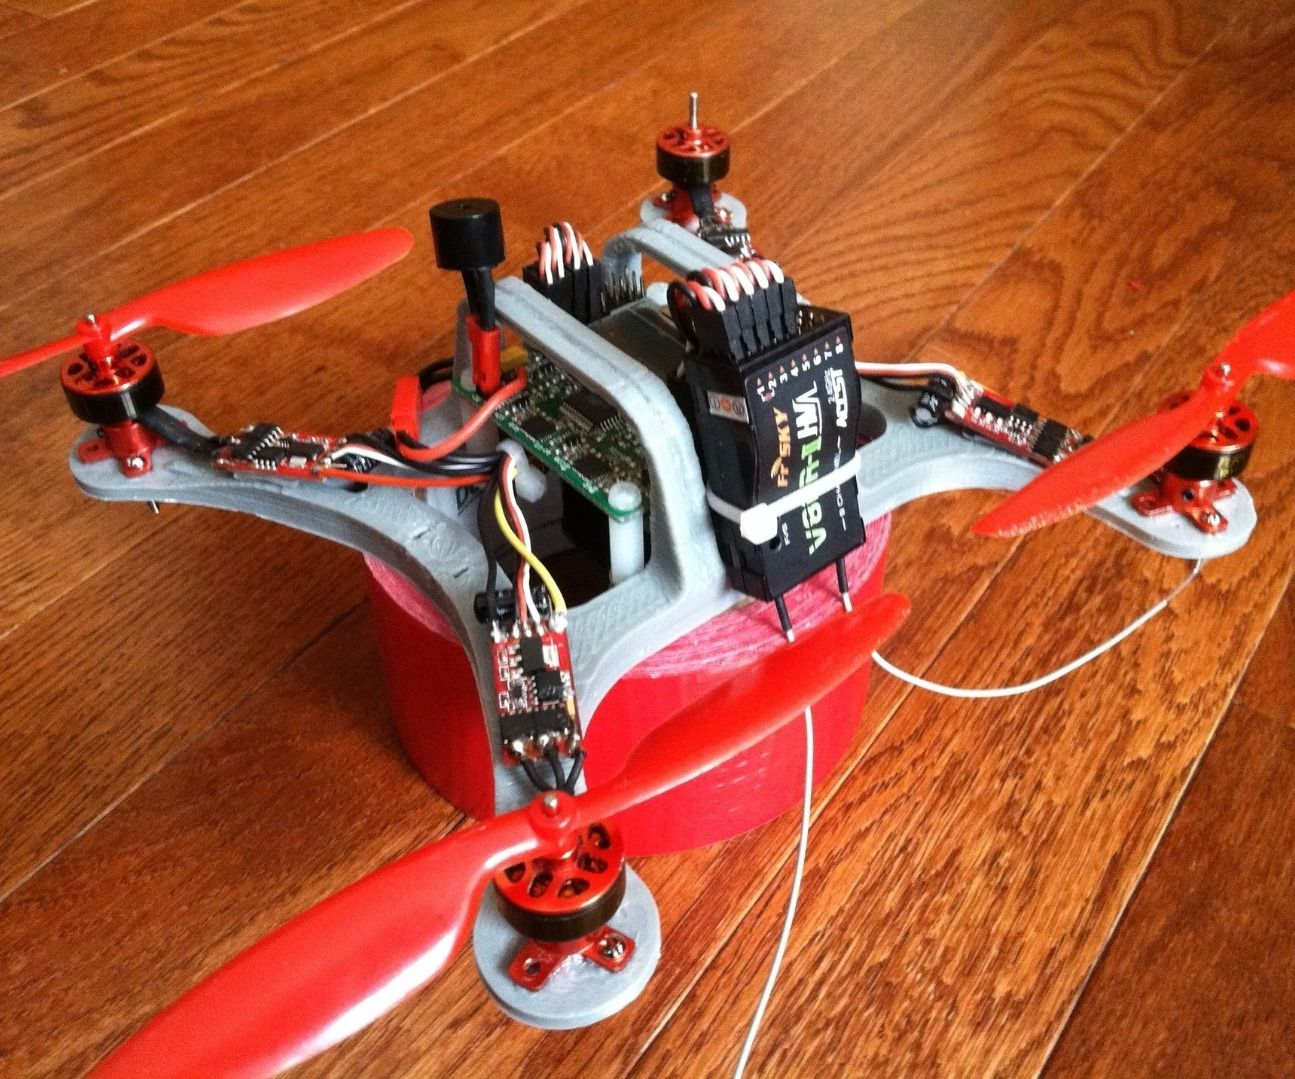 How I built this 200mm Mini H Quad Copter